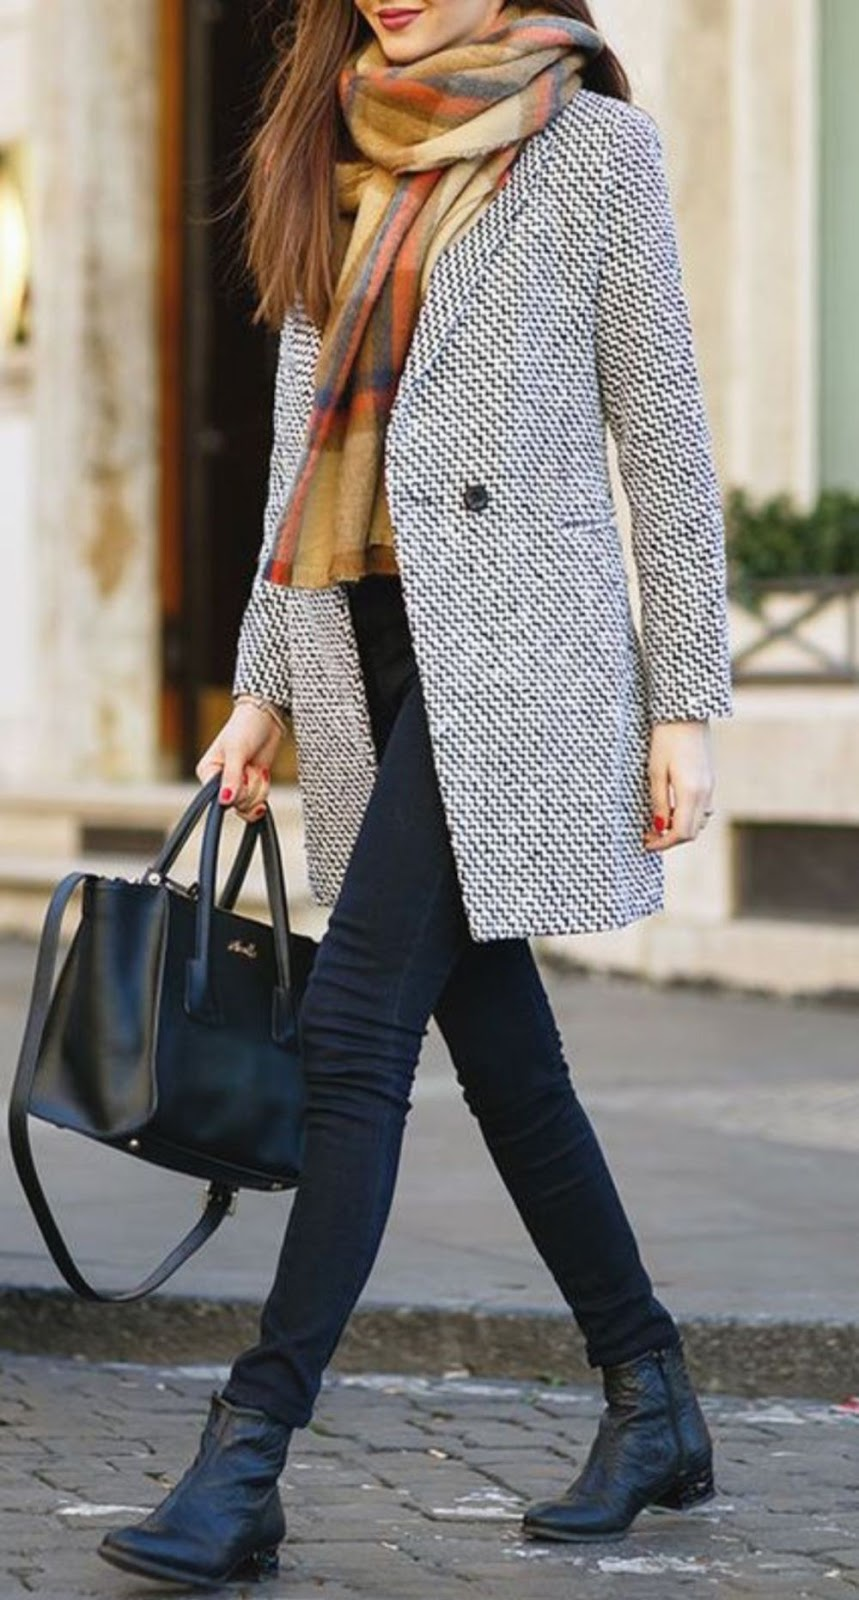 trendy winter outfit idea / black skinnies + bag + coat + scarf + boots